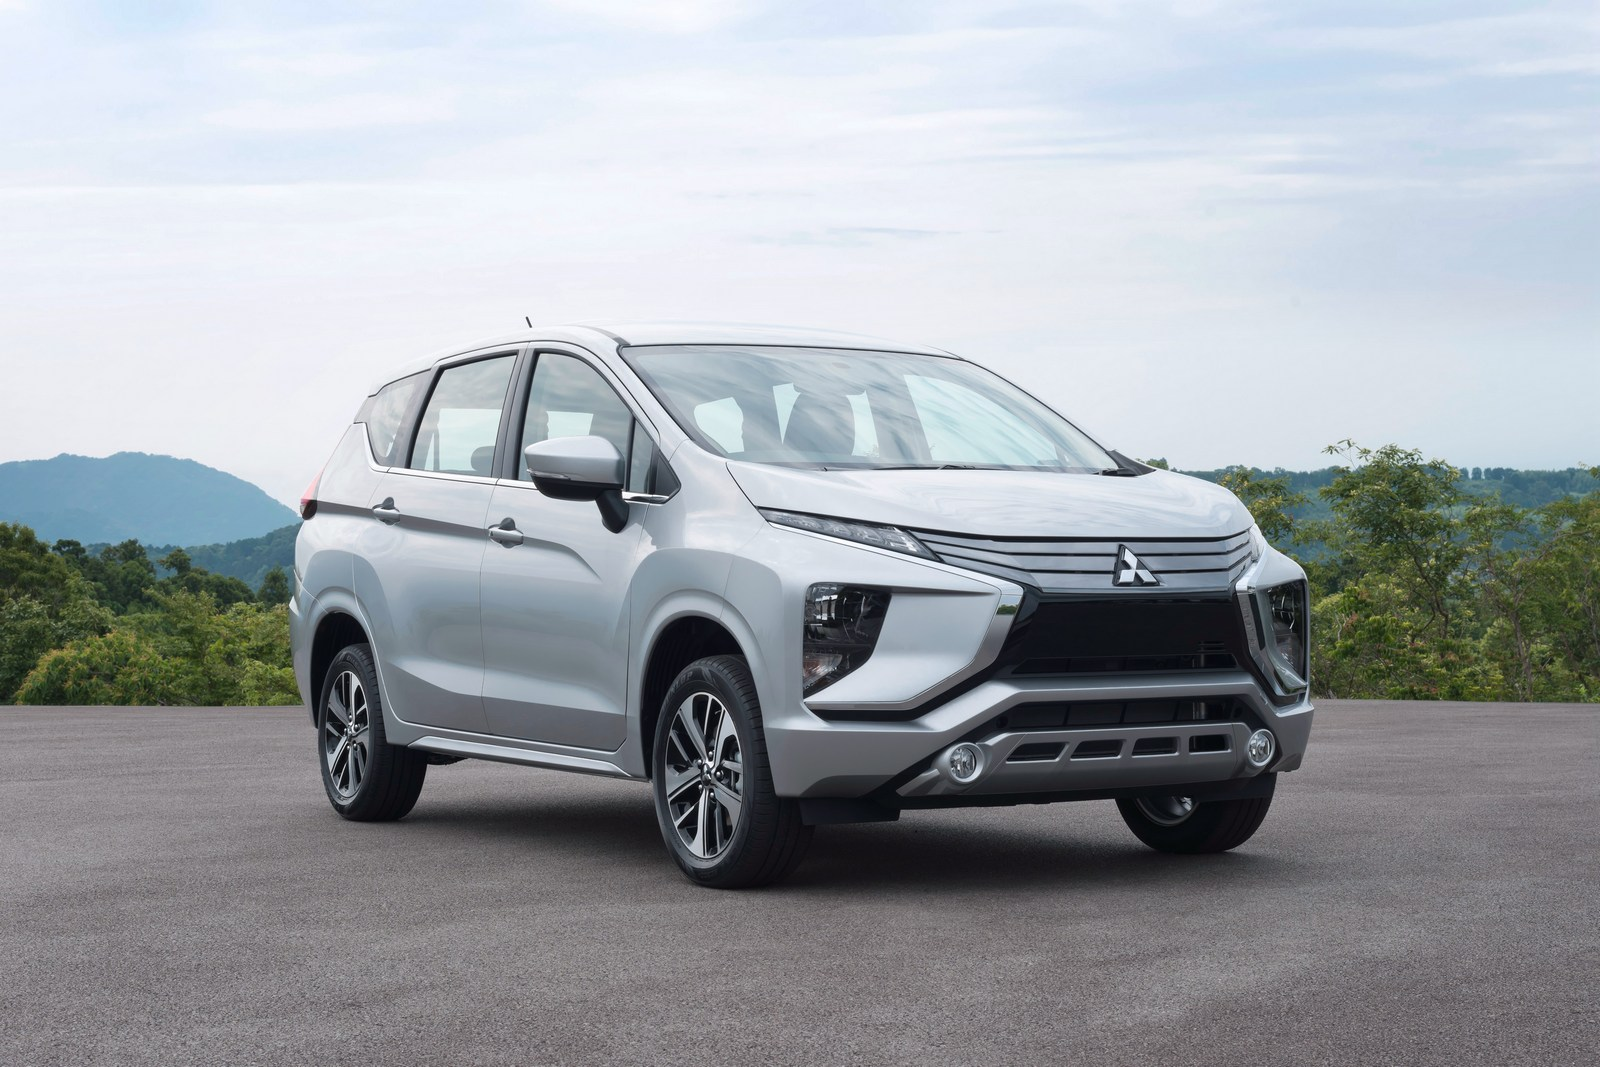 Review Grand New Veloz 1.5 Kelemahan Avanza 2018 All Mitsubishi Xpander Debuts In Indonesia Carscoops